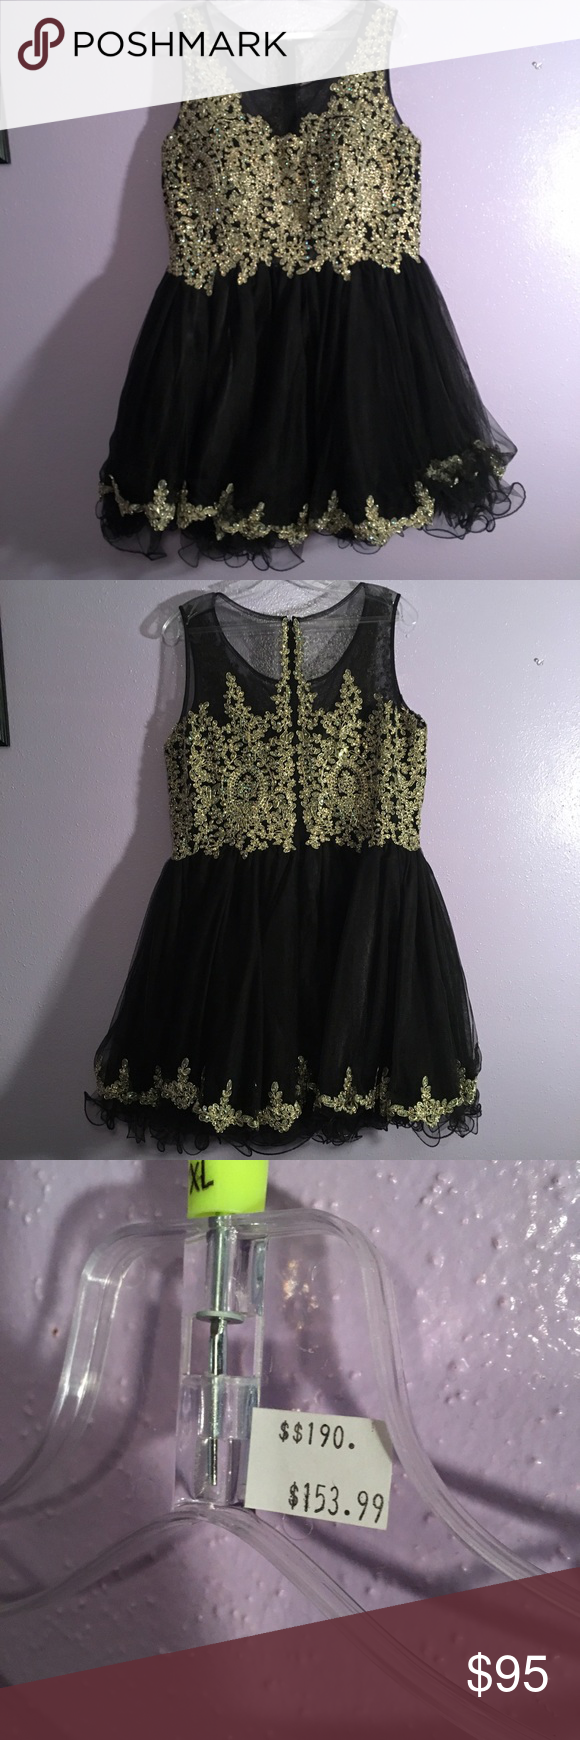 Prom dress short gold and black prom dress originally bought at